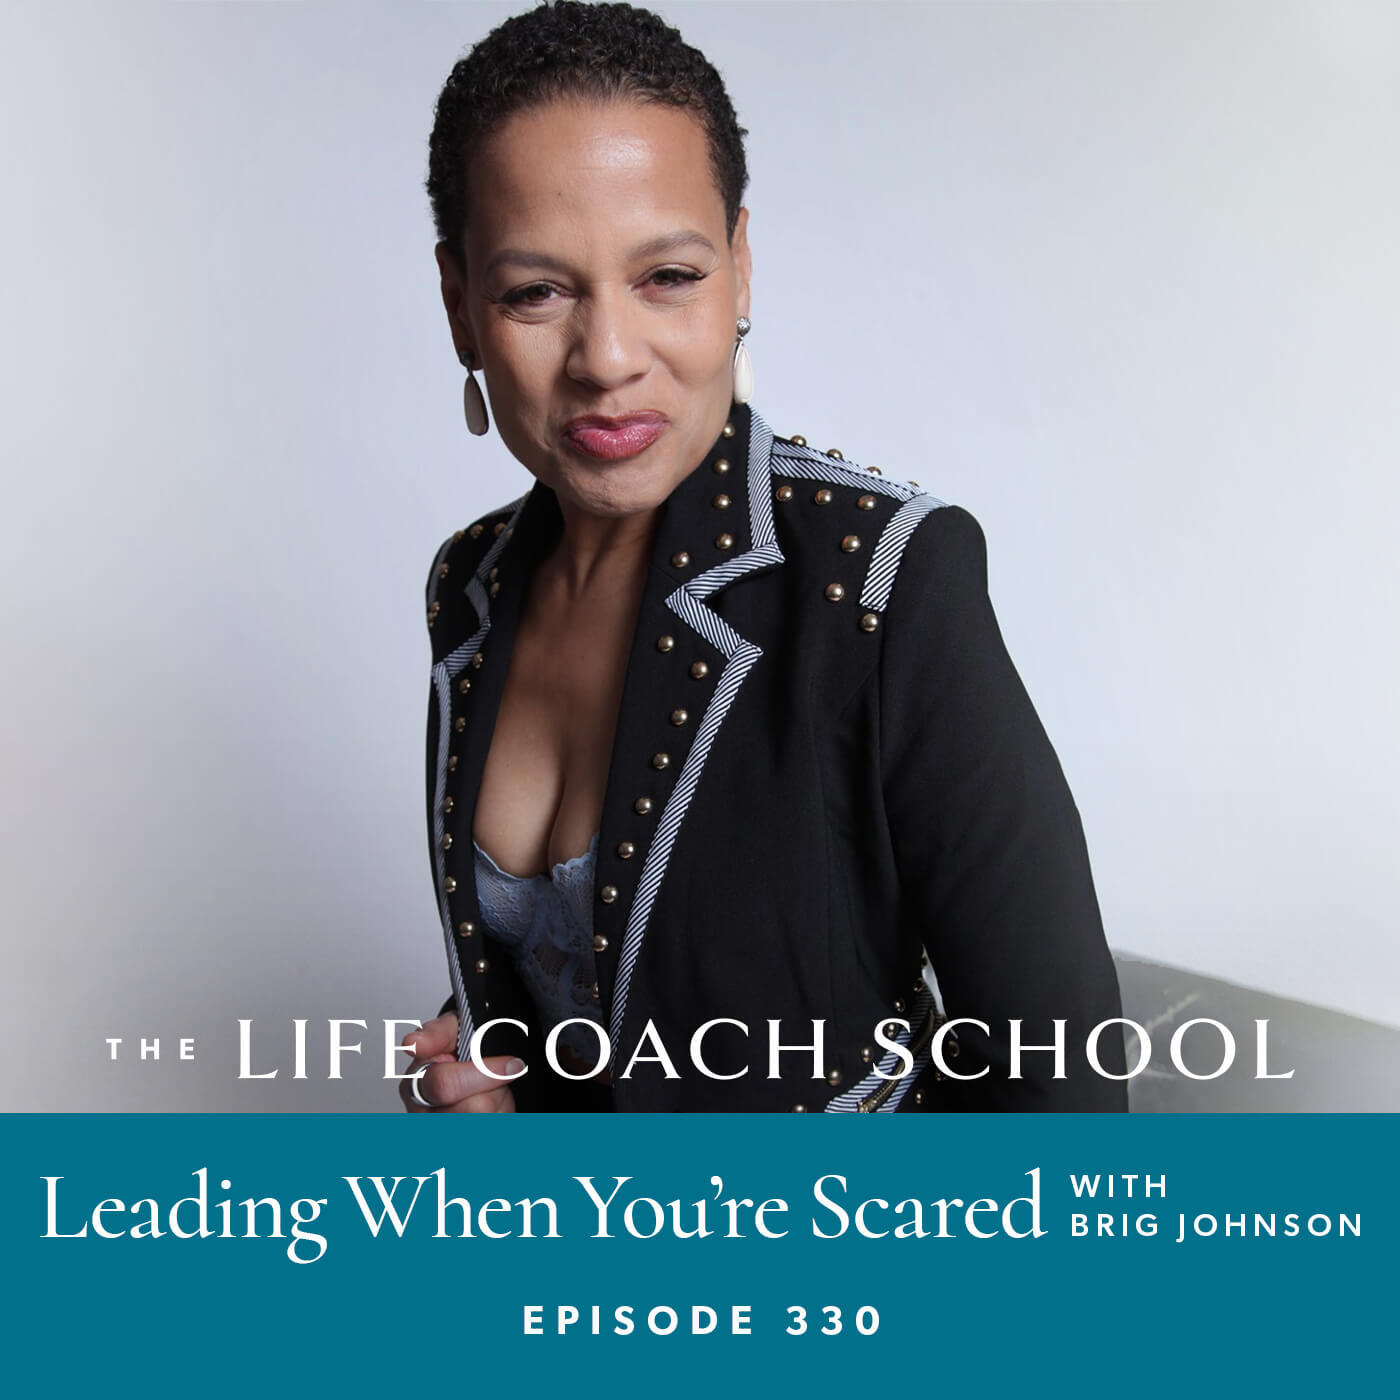 Ep #330: Leading When You're Scared with Brig Johnson